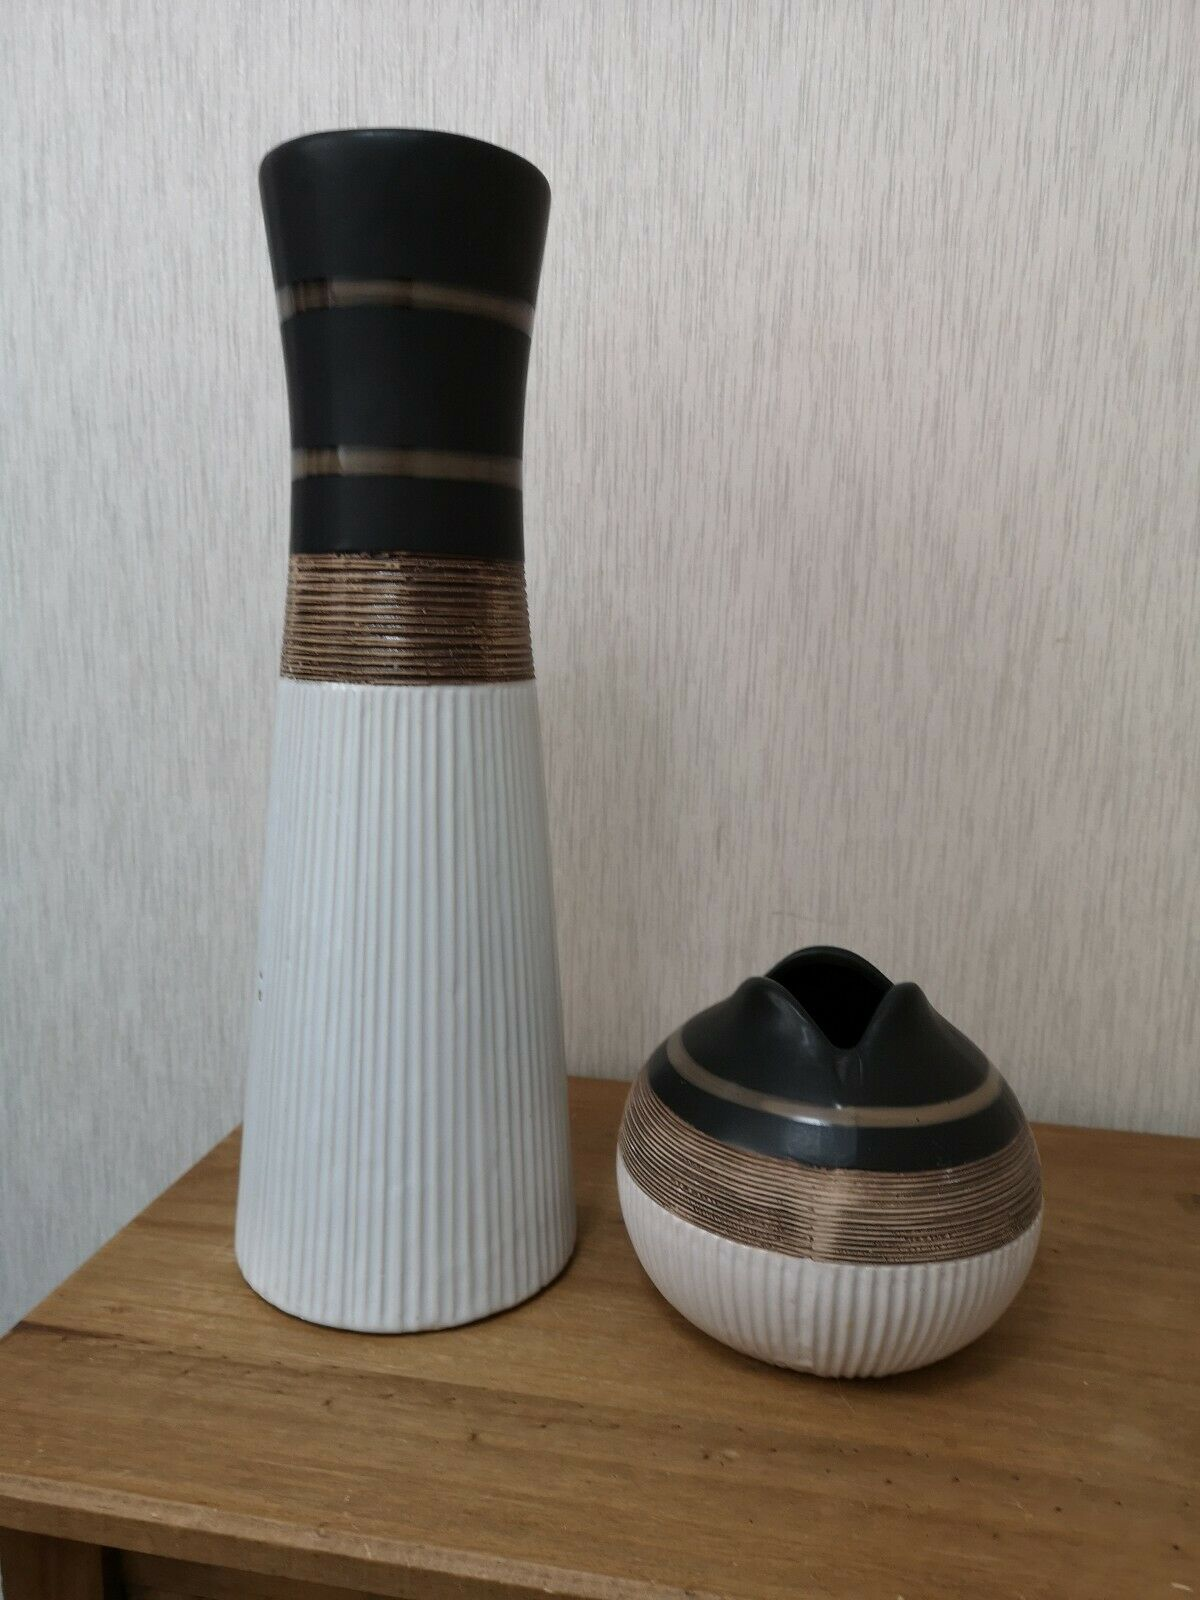 2 braun Cream Glazed Ceramic Pottery Stripe RibBett Vases Pots 1 Large 1 Small